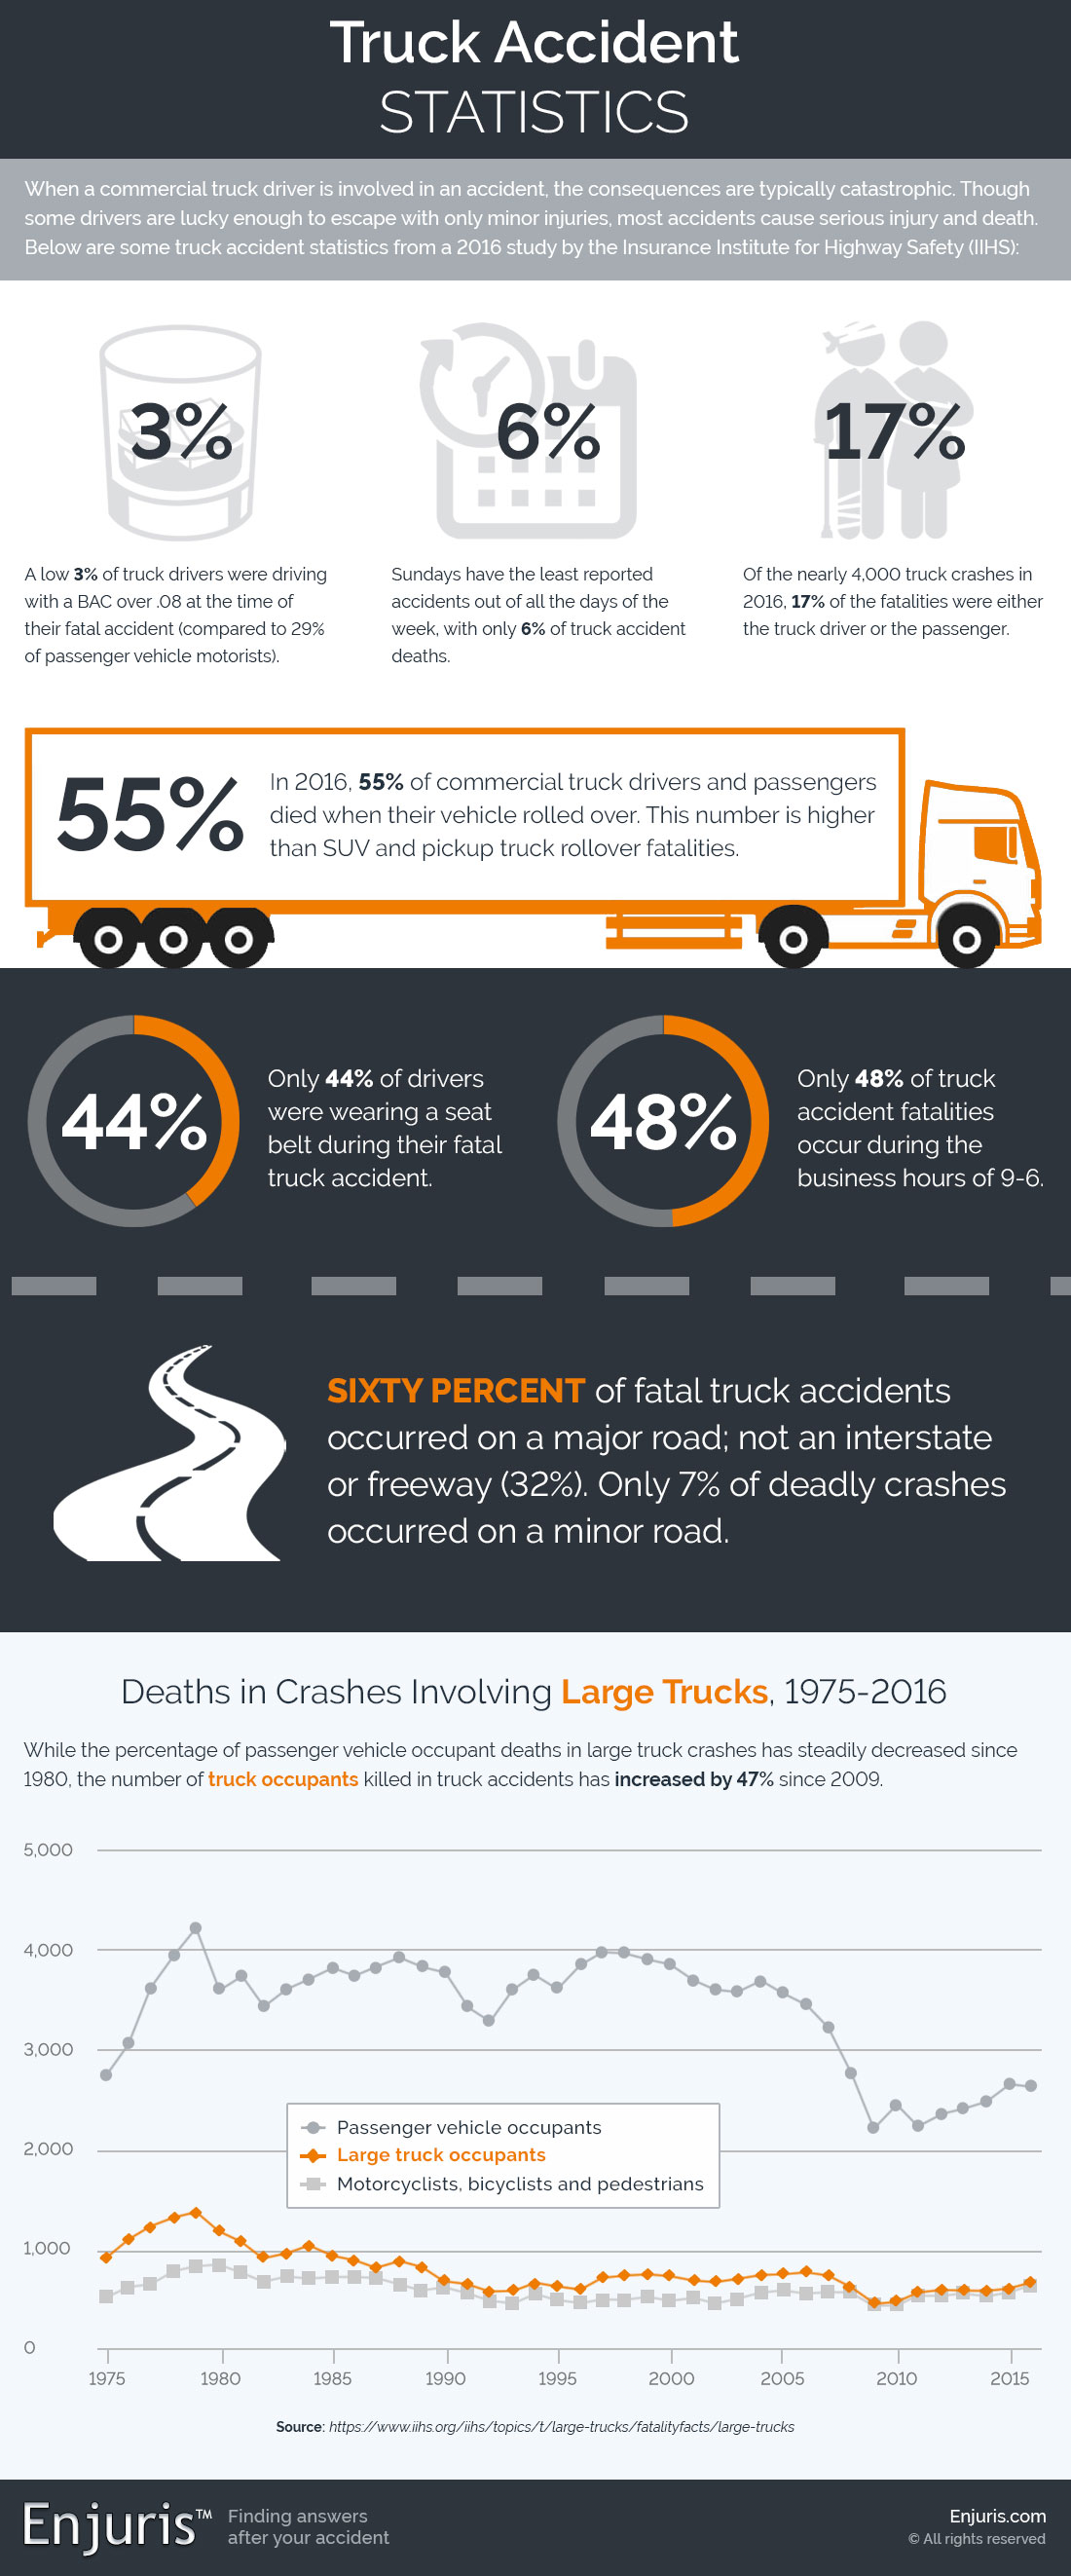 Statistics on Truck Accidents